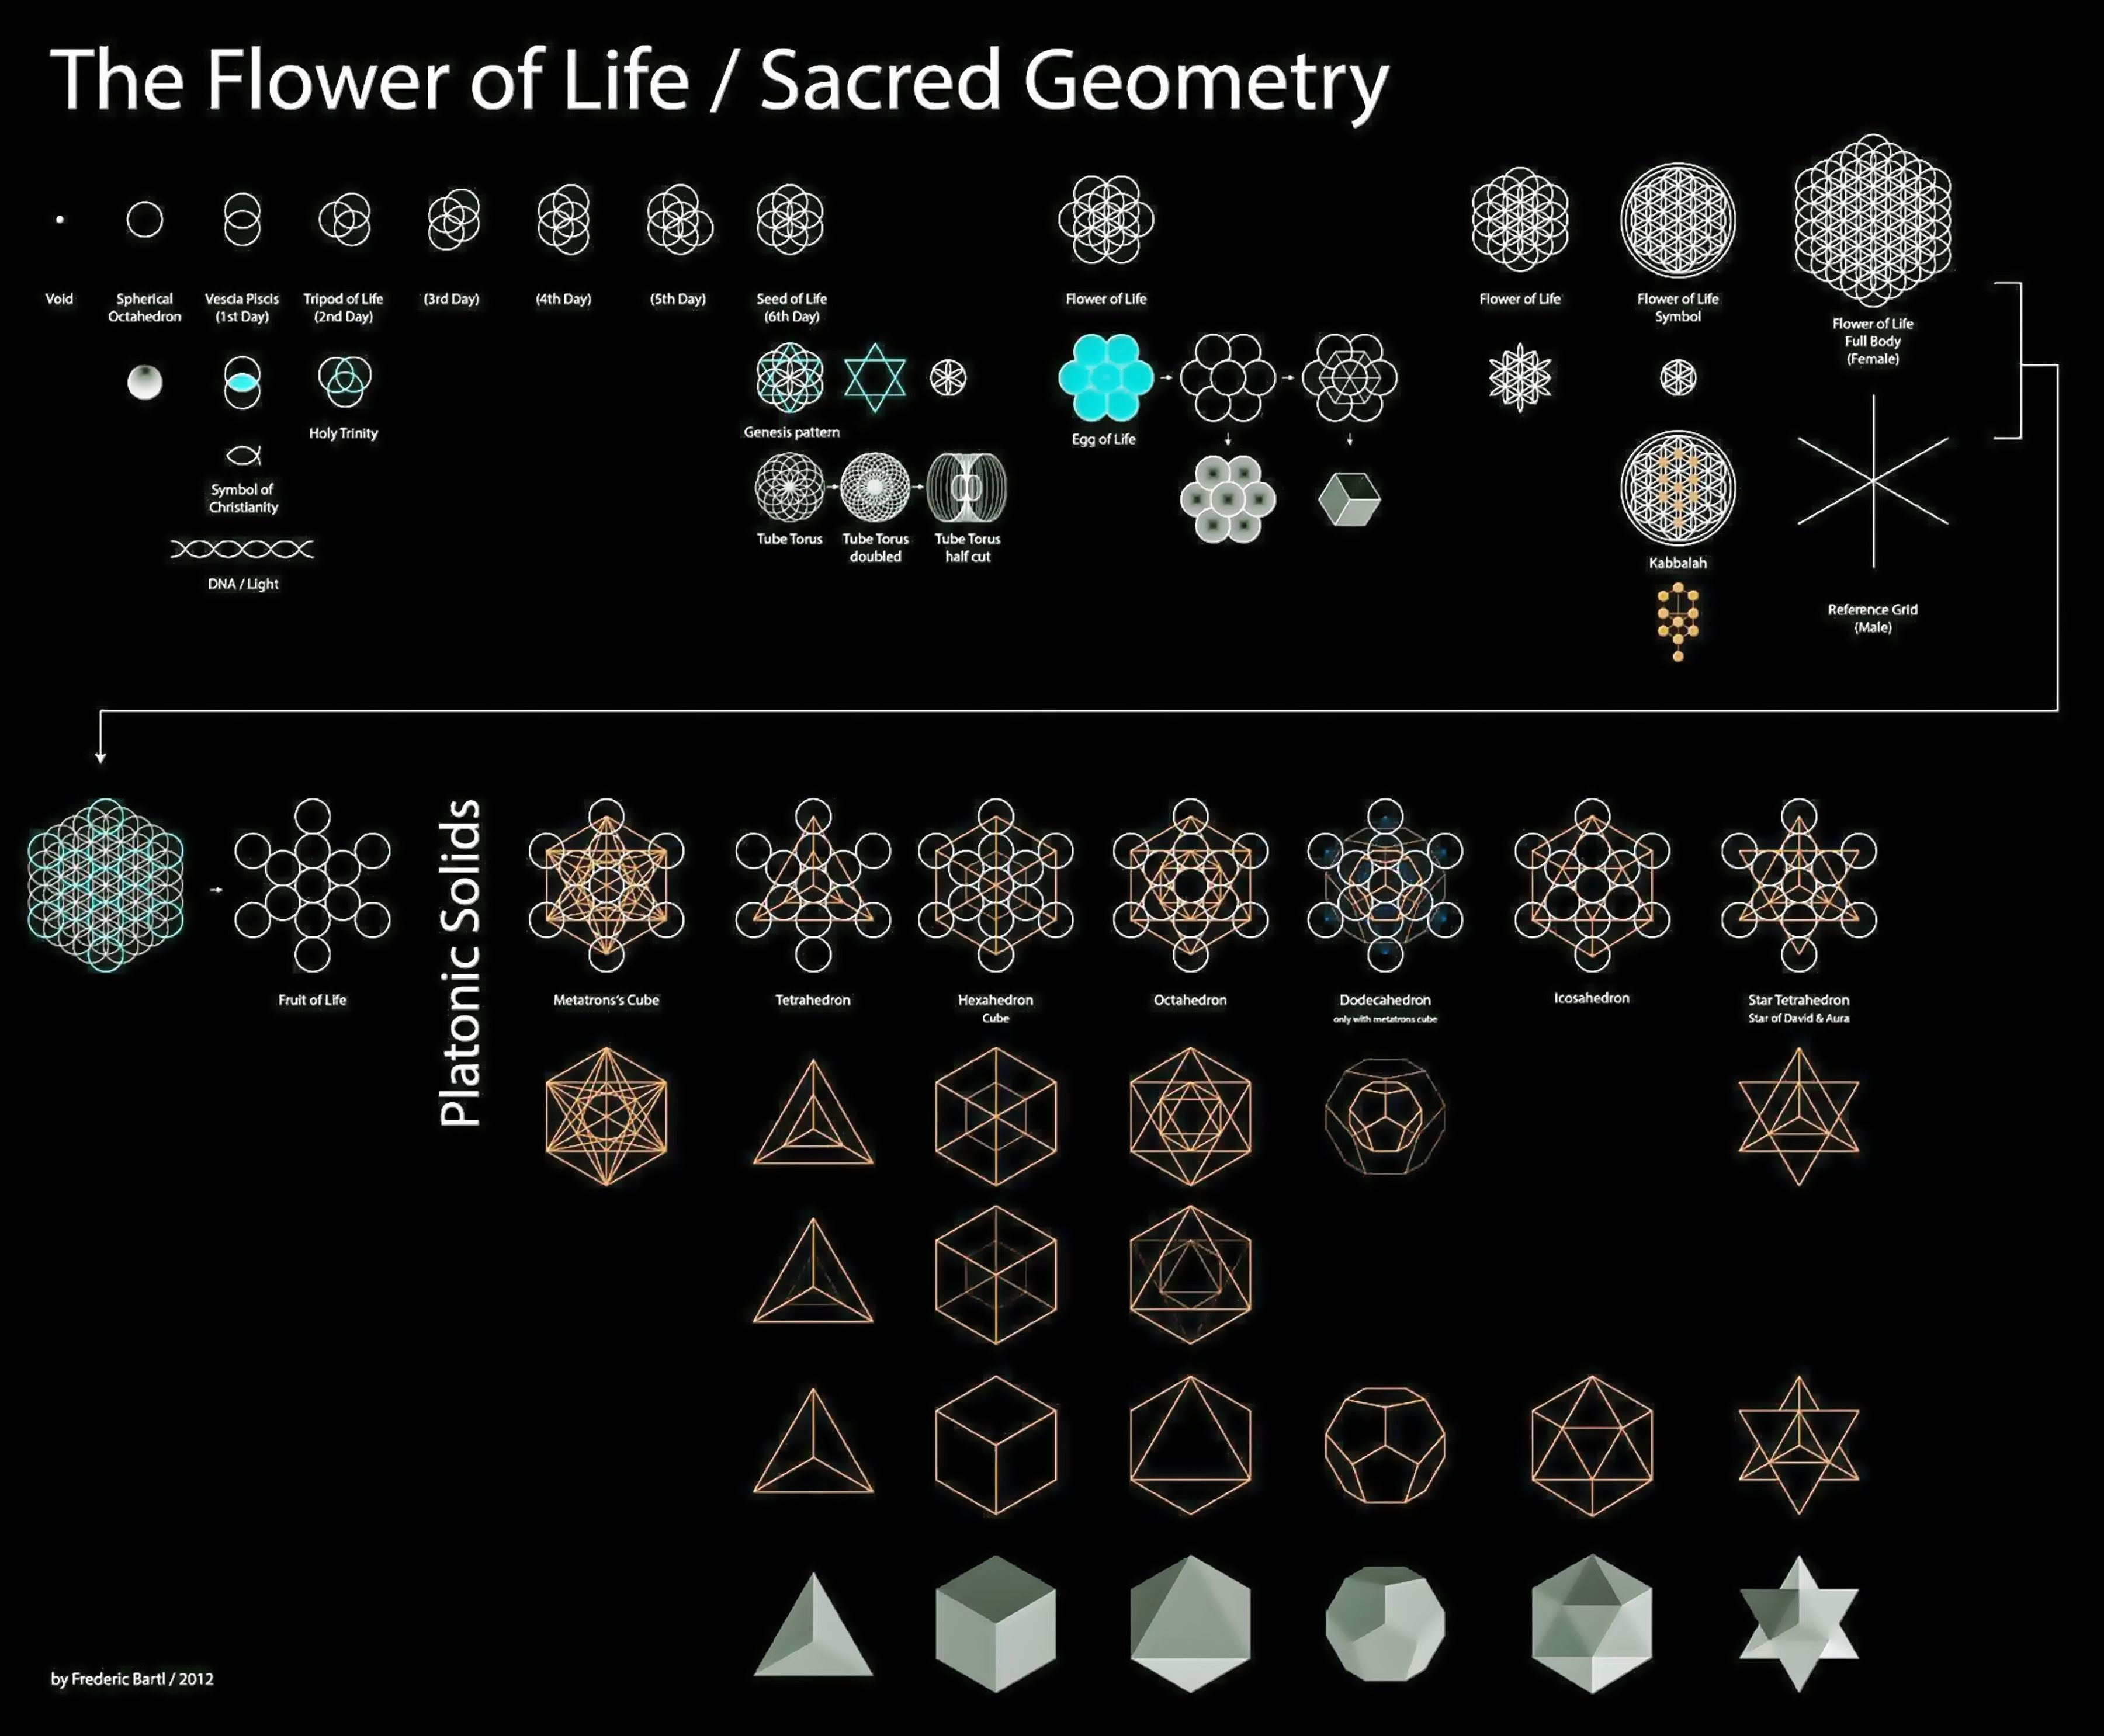 The flower of life sacred geometry pinteres 49f7b5b623b13348940b4b0589a45bd7g buycottarizona